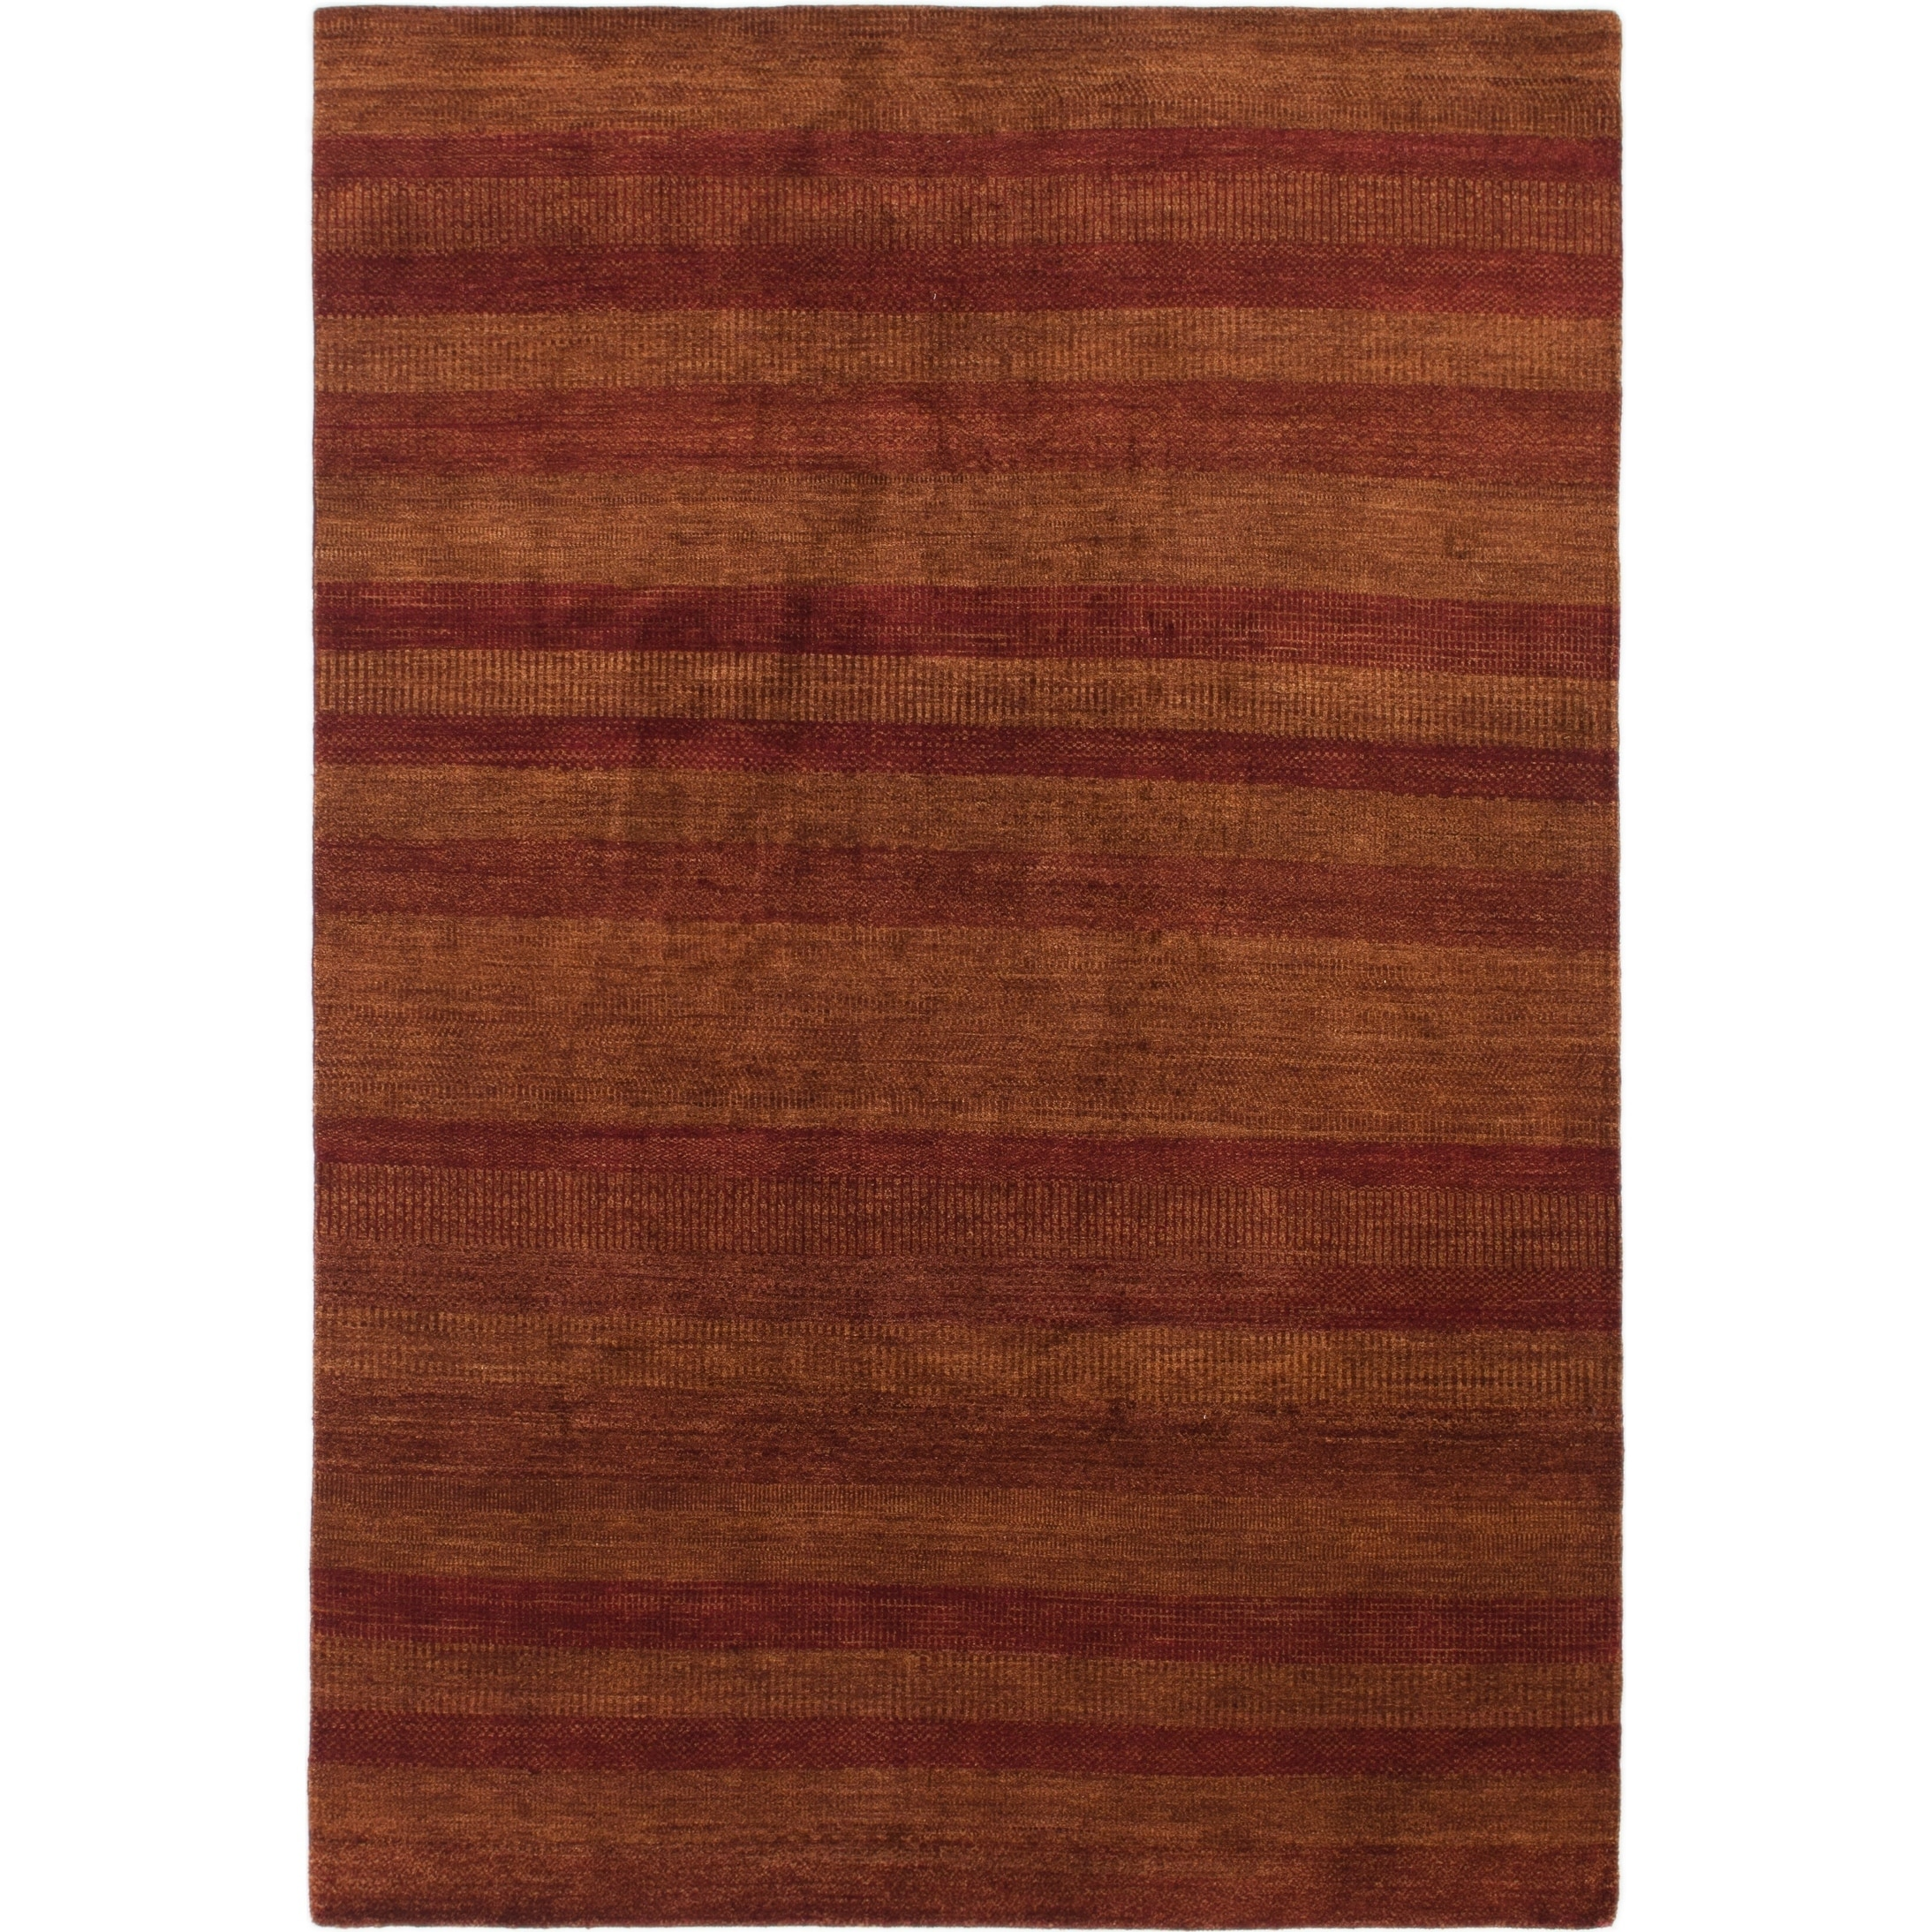 Hand Knotted Kashkuli Gabbeh Wool Area Rug - 6 6 x 9 9 (Red - 6 6 x 9 9)